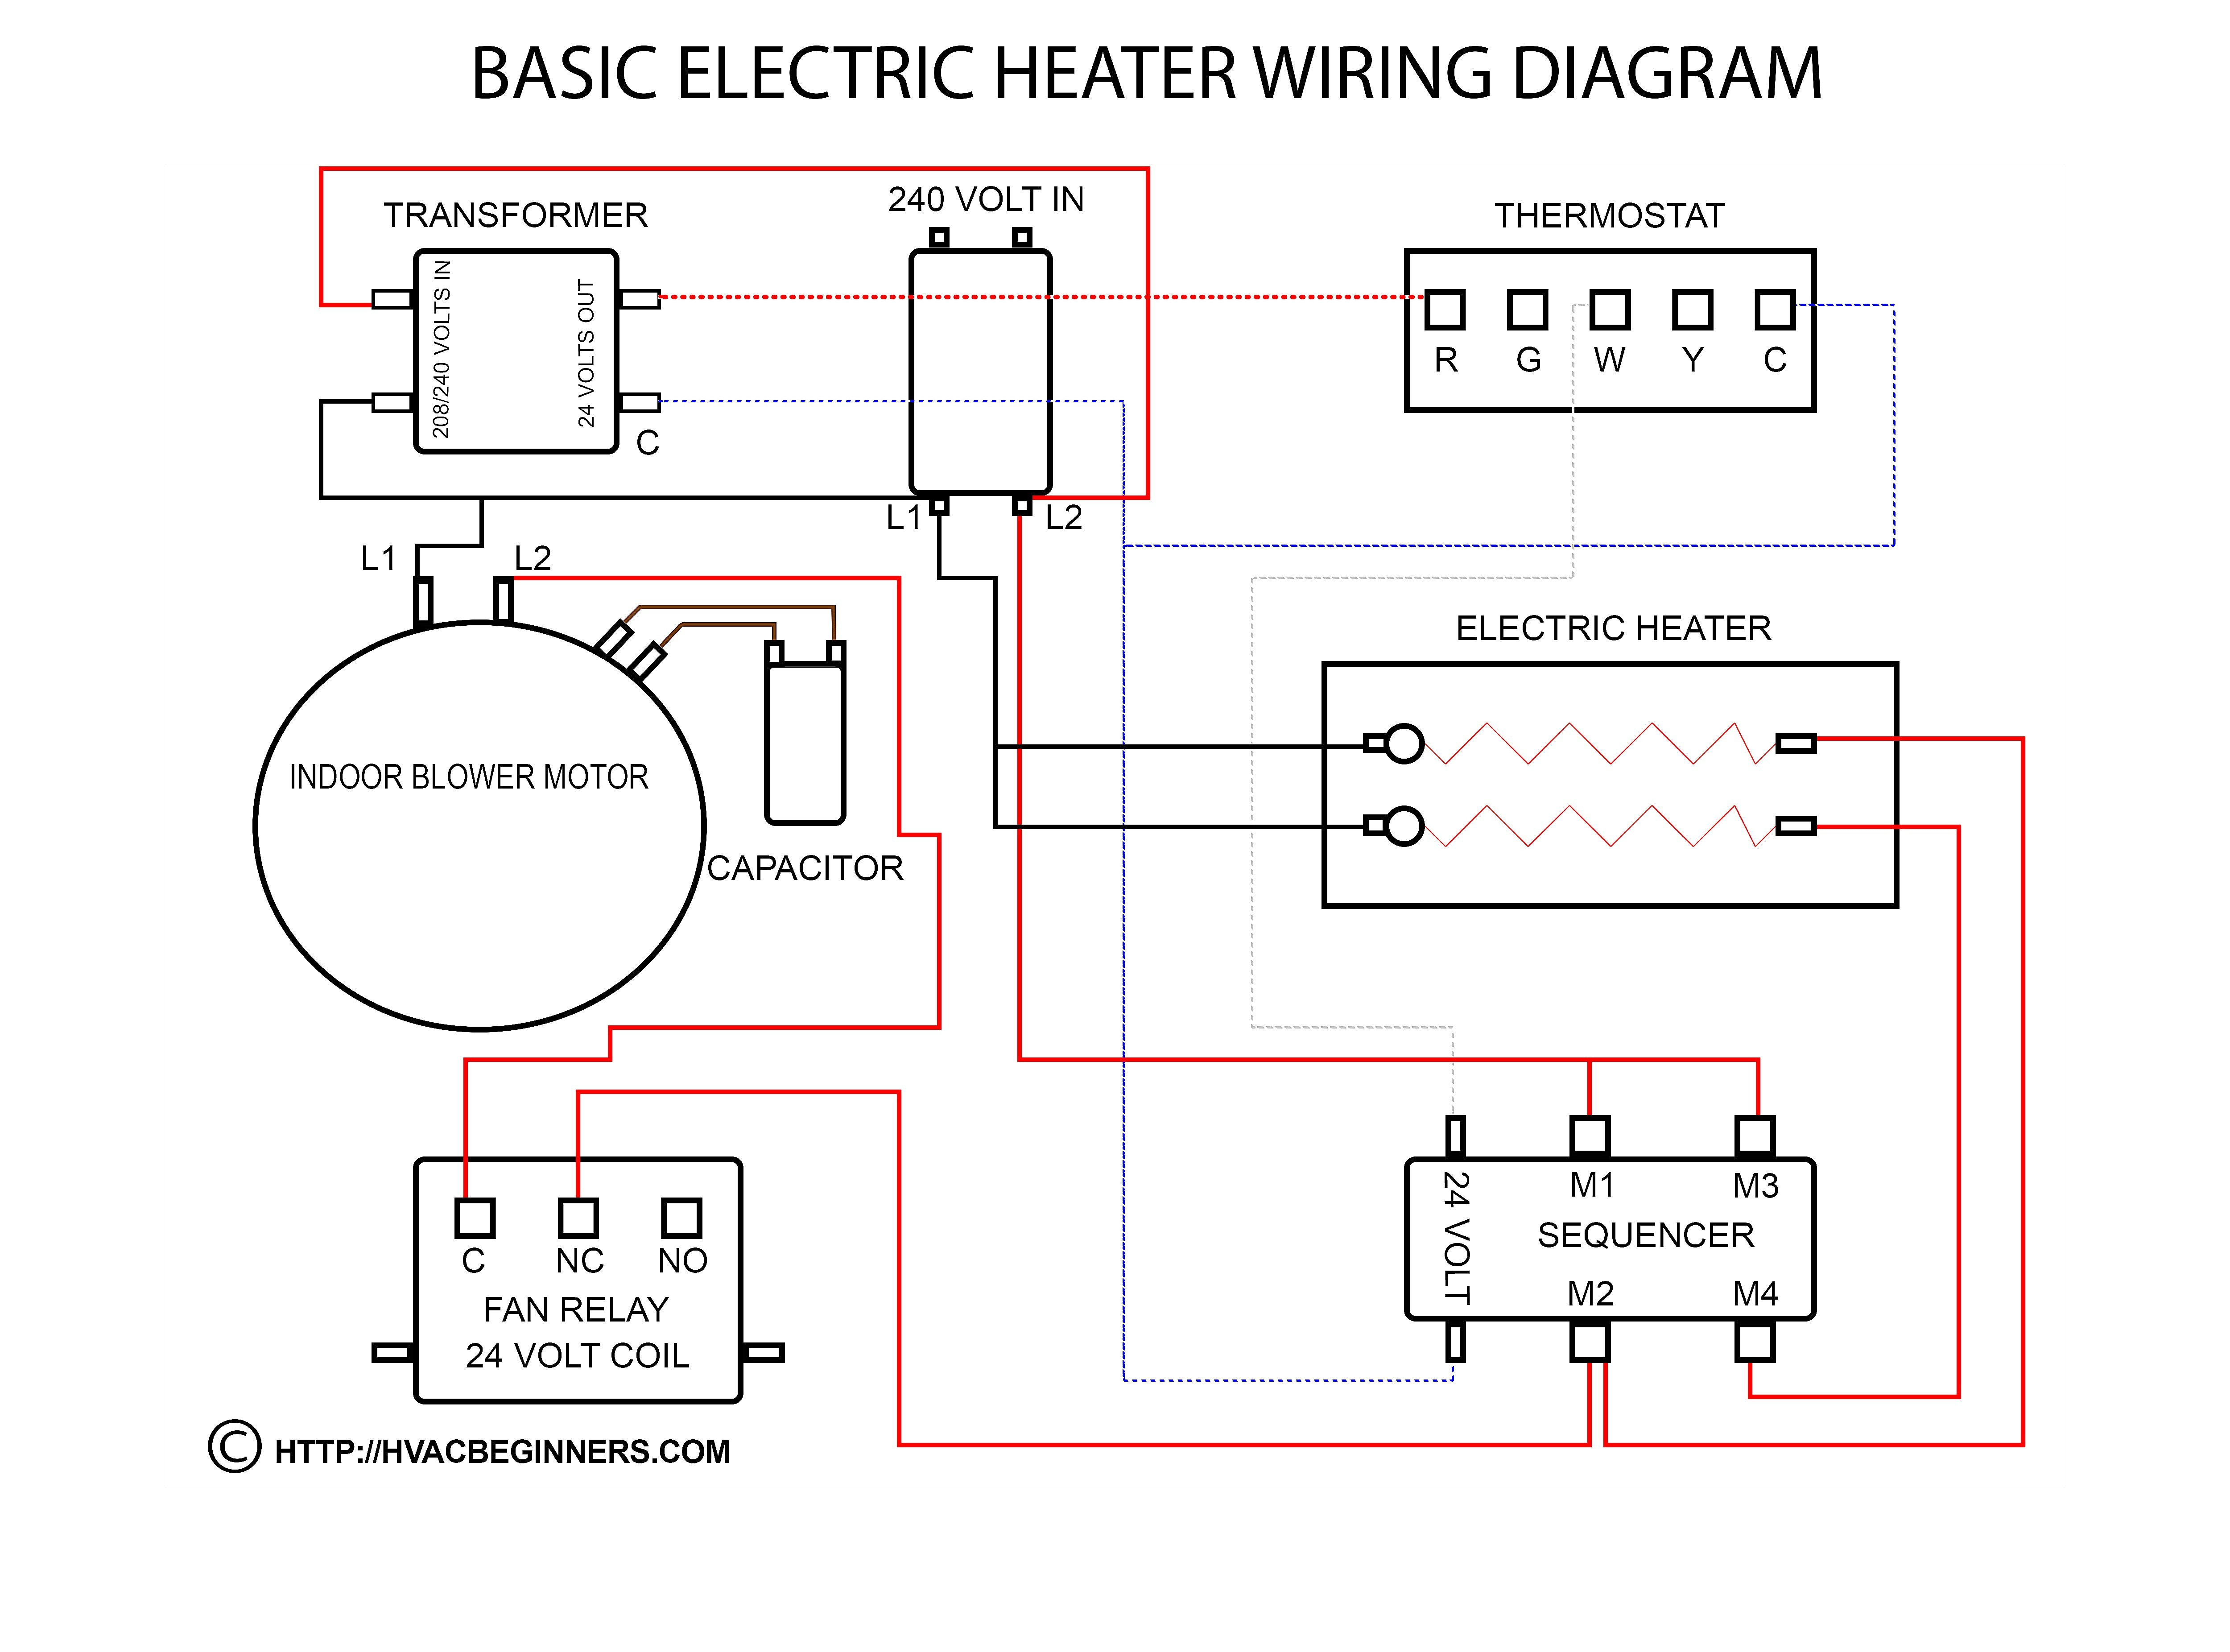 1086 Ih Cab Wiring Diagram | Wiring Liry Hand Warmer Wiring Diagram Jag on